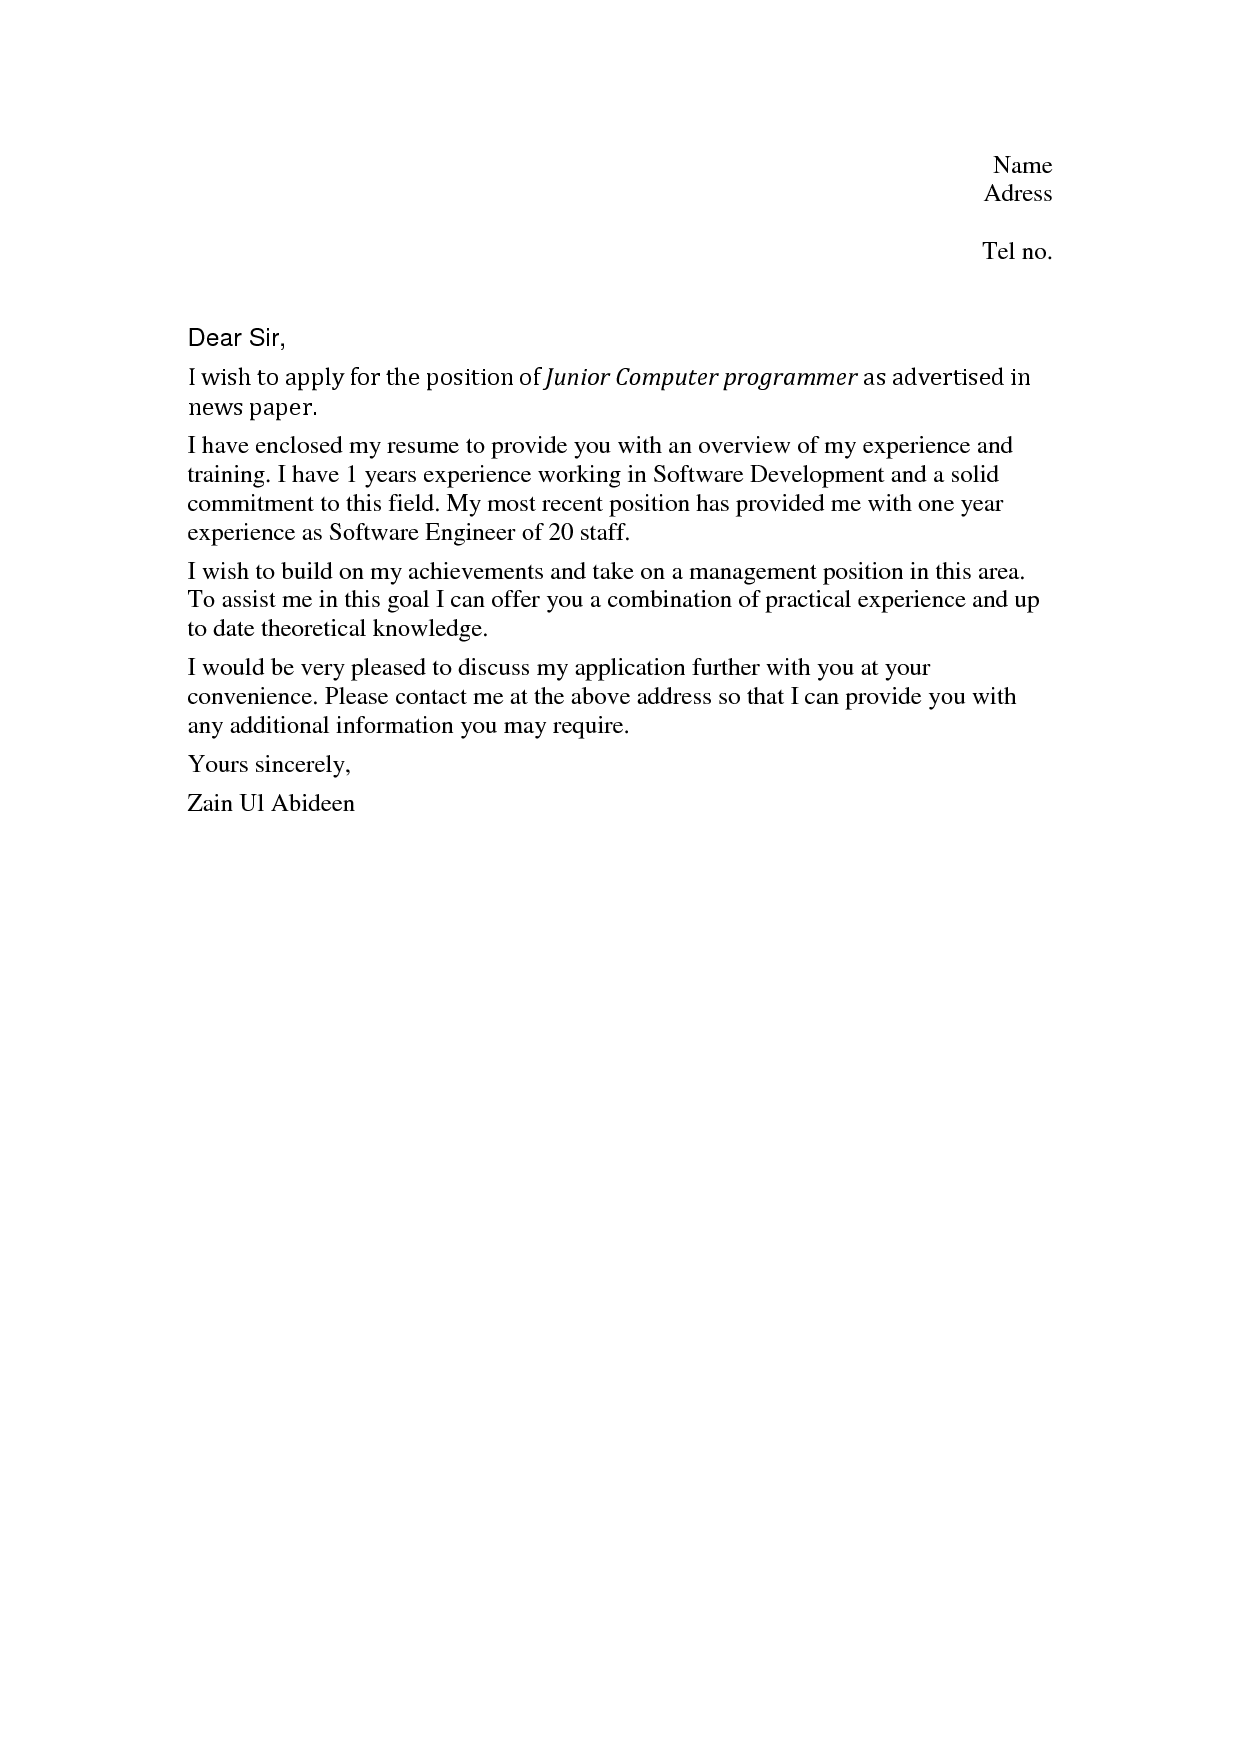 cover letter sample no work experience cover letter samplecover